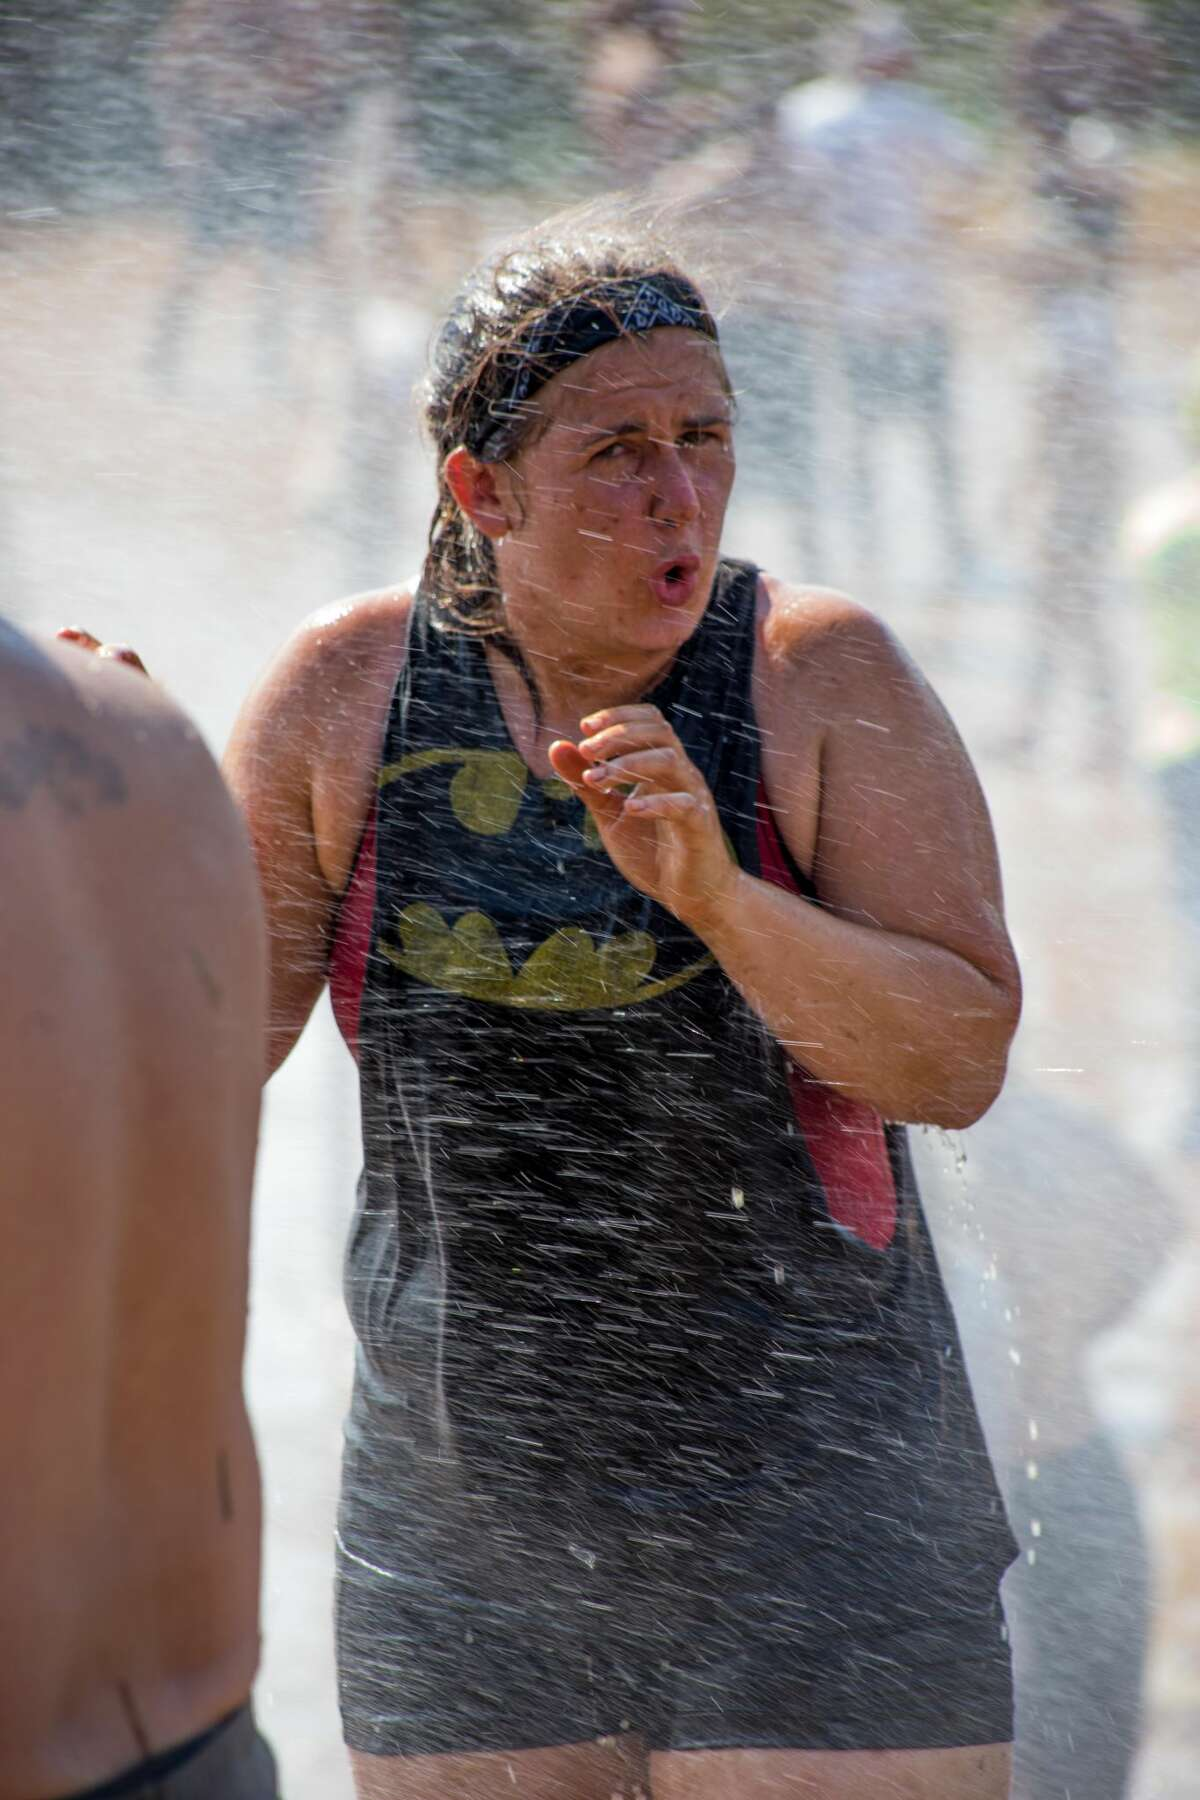 The Epilepsy Foundation of Connecticut's annual mud volleyball tournament was held August 17, 2019 in Middletown. This year, more than 150 teams of volleyball players got down and dirty to play in the 33rd